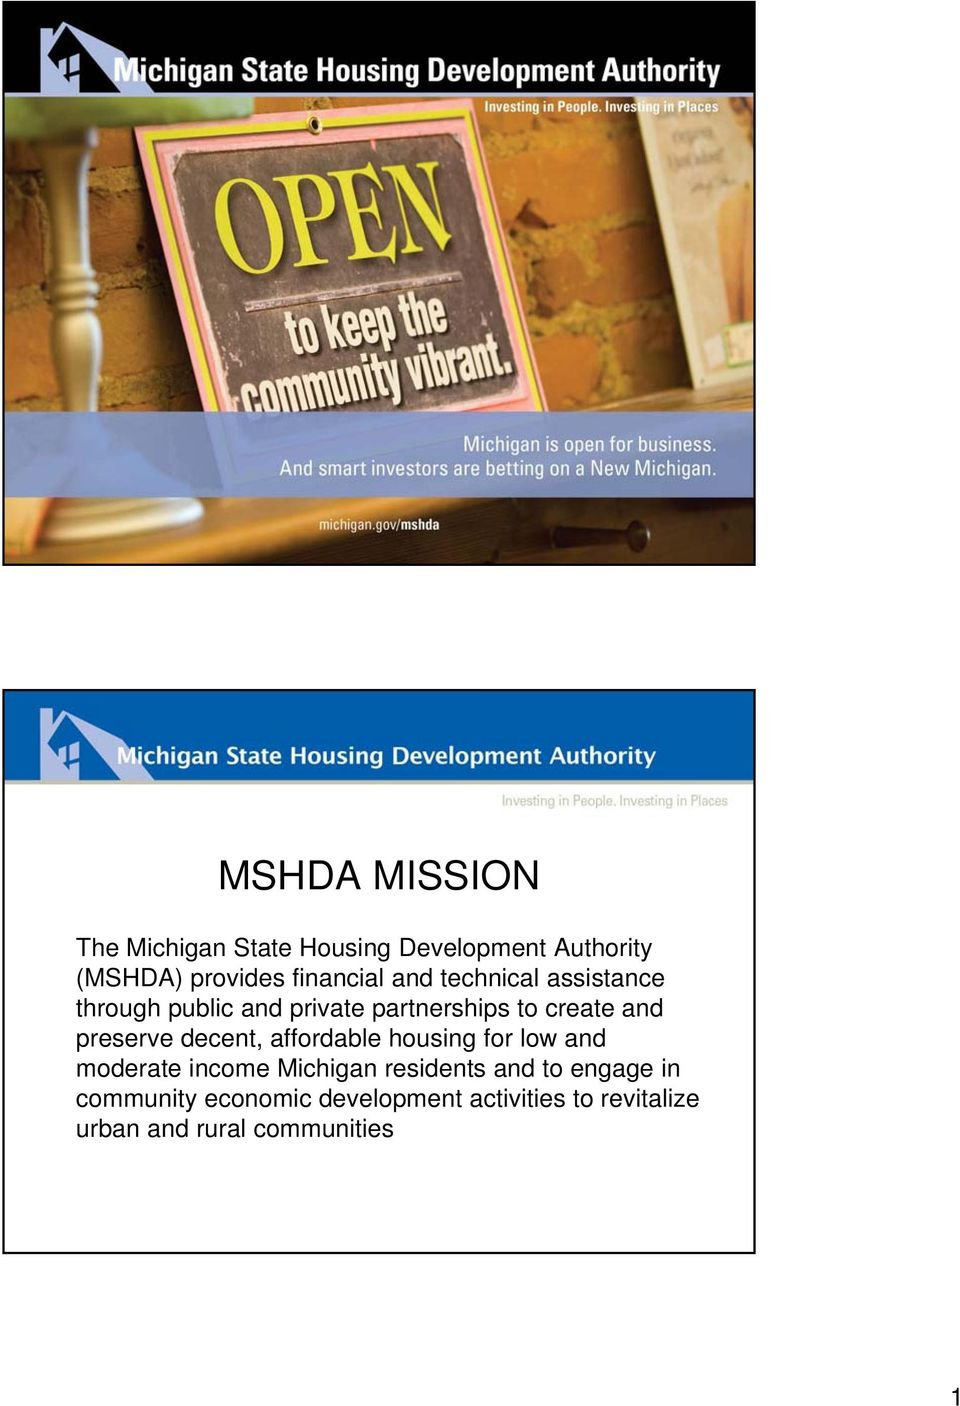 private partnerships to create and preserve decent, affordable housing for low and moderate income Michigan